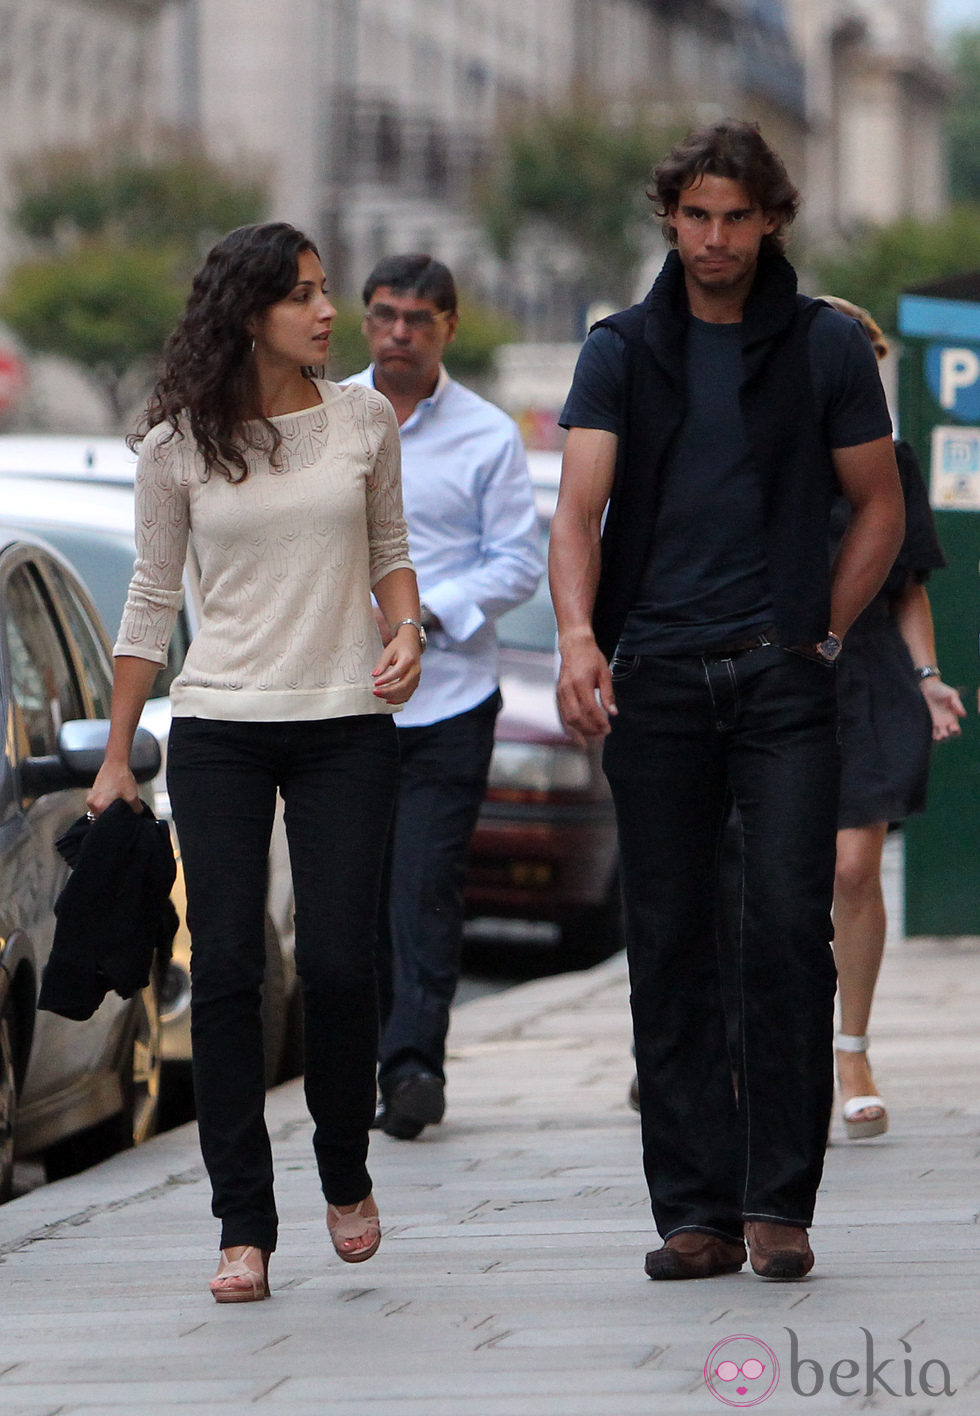 Xisca on Pinterest | Rafael Nadal, Girlfriends and French Open